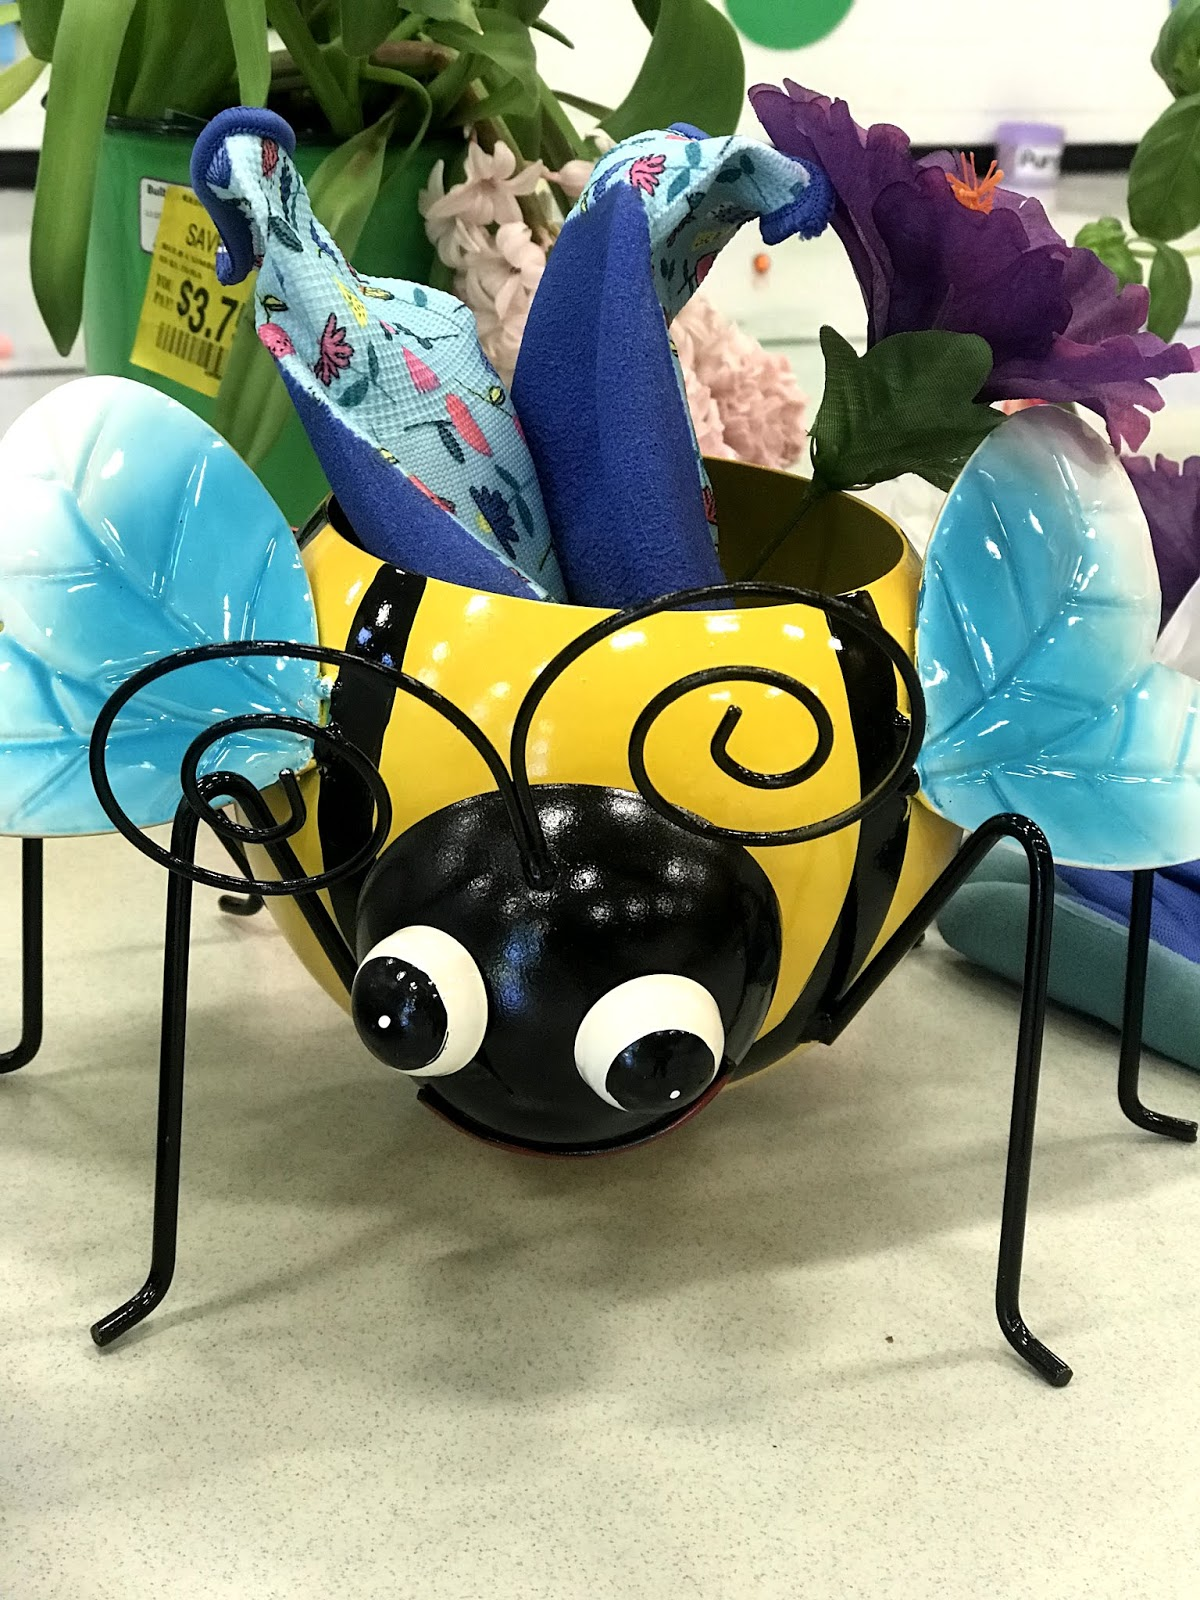 a close up of a bee decoration on the garden table.